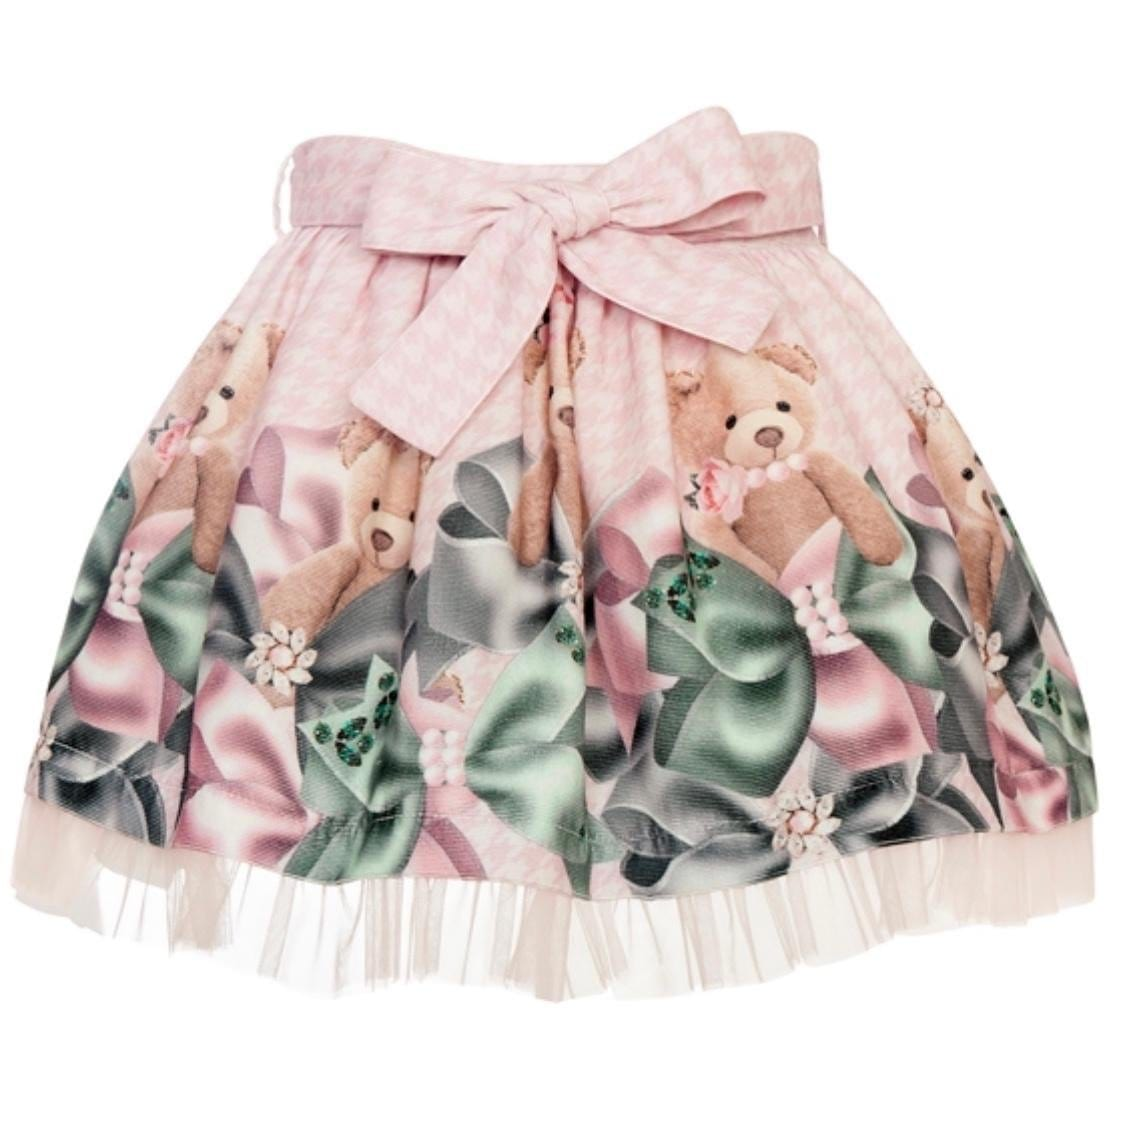 BALLOON CHIC TEDDY TIE SKIRT SET